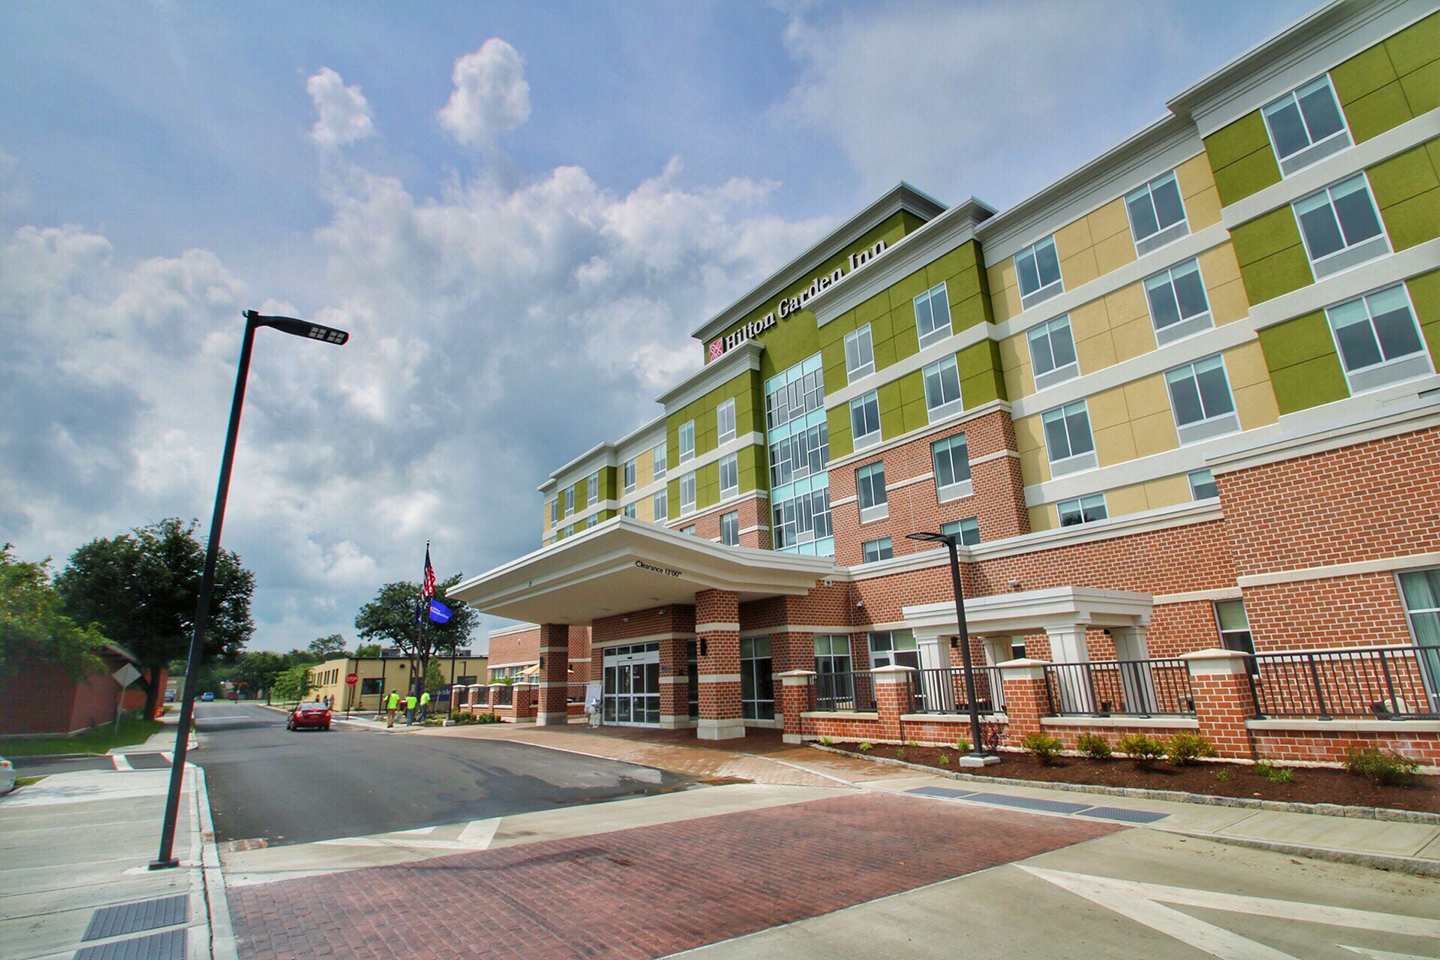 Hilton Garden Inn Corning Downtown_exterior